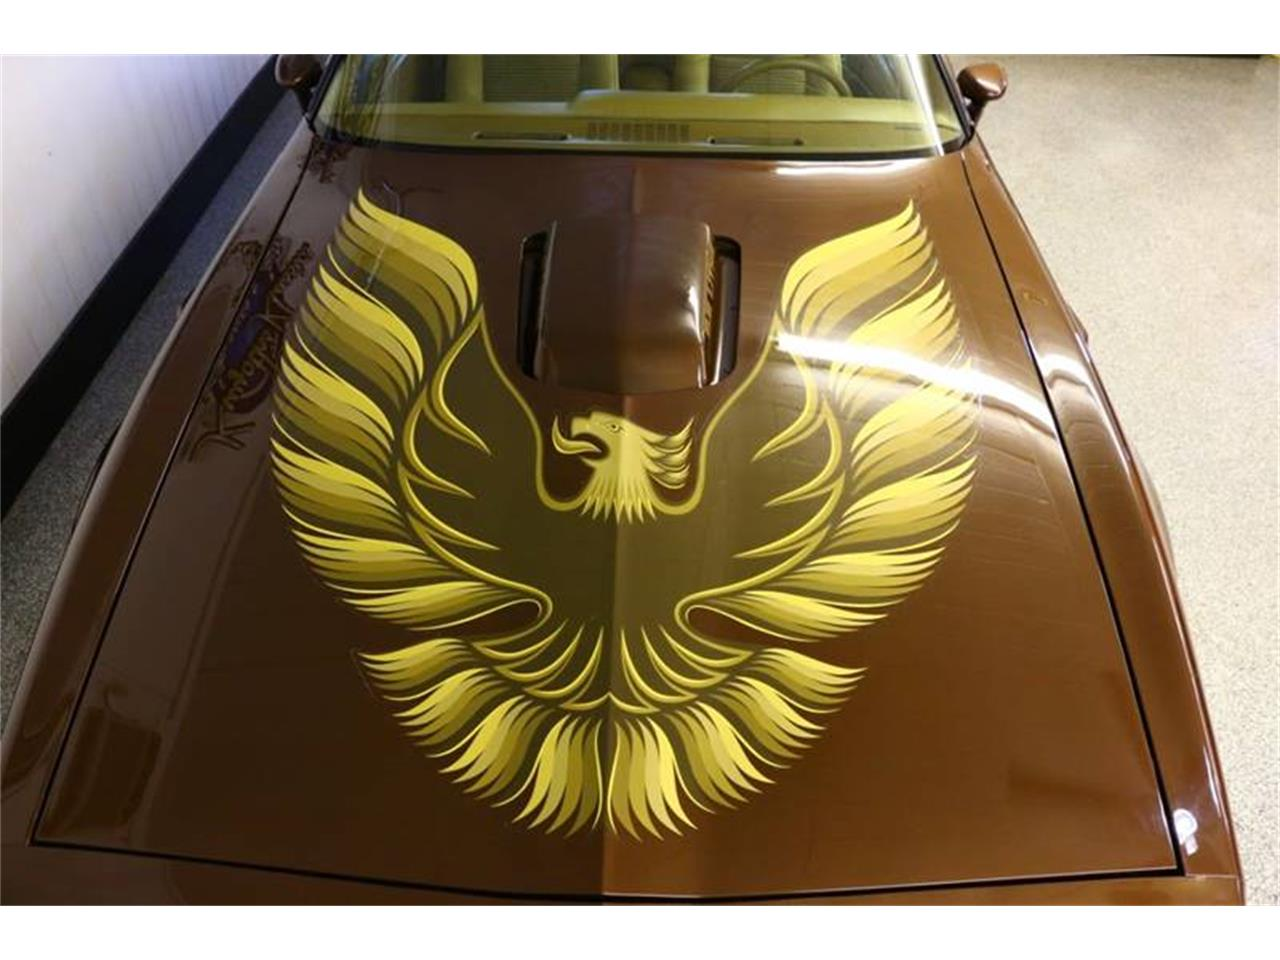 1979 Pontiac Firebird Trans Am for sale in Stratford, WI – photo 4